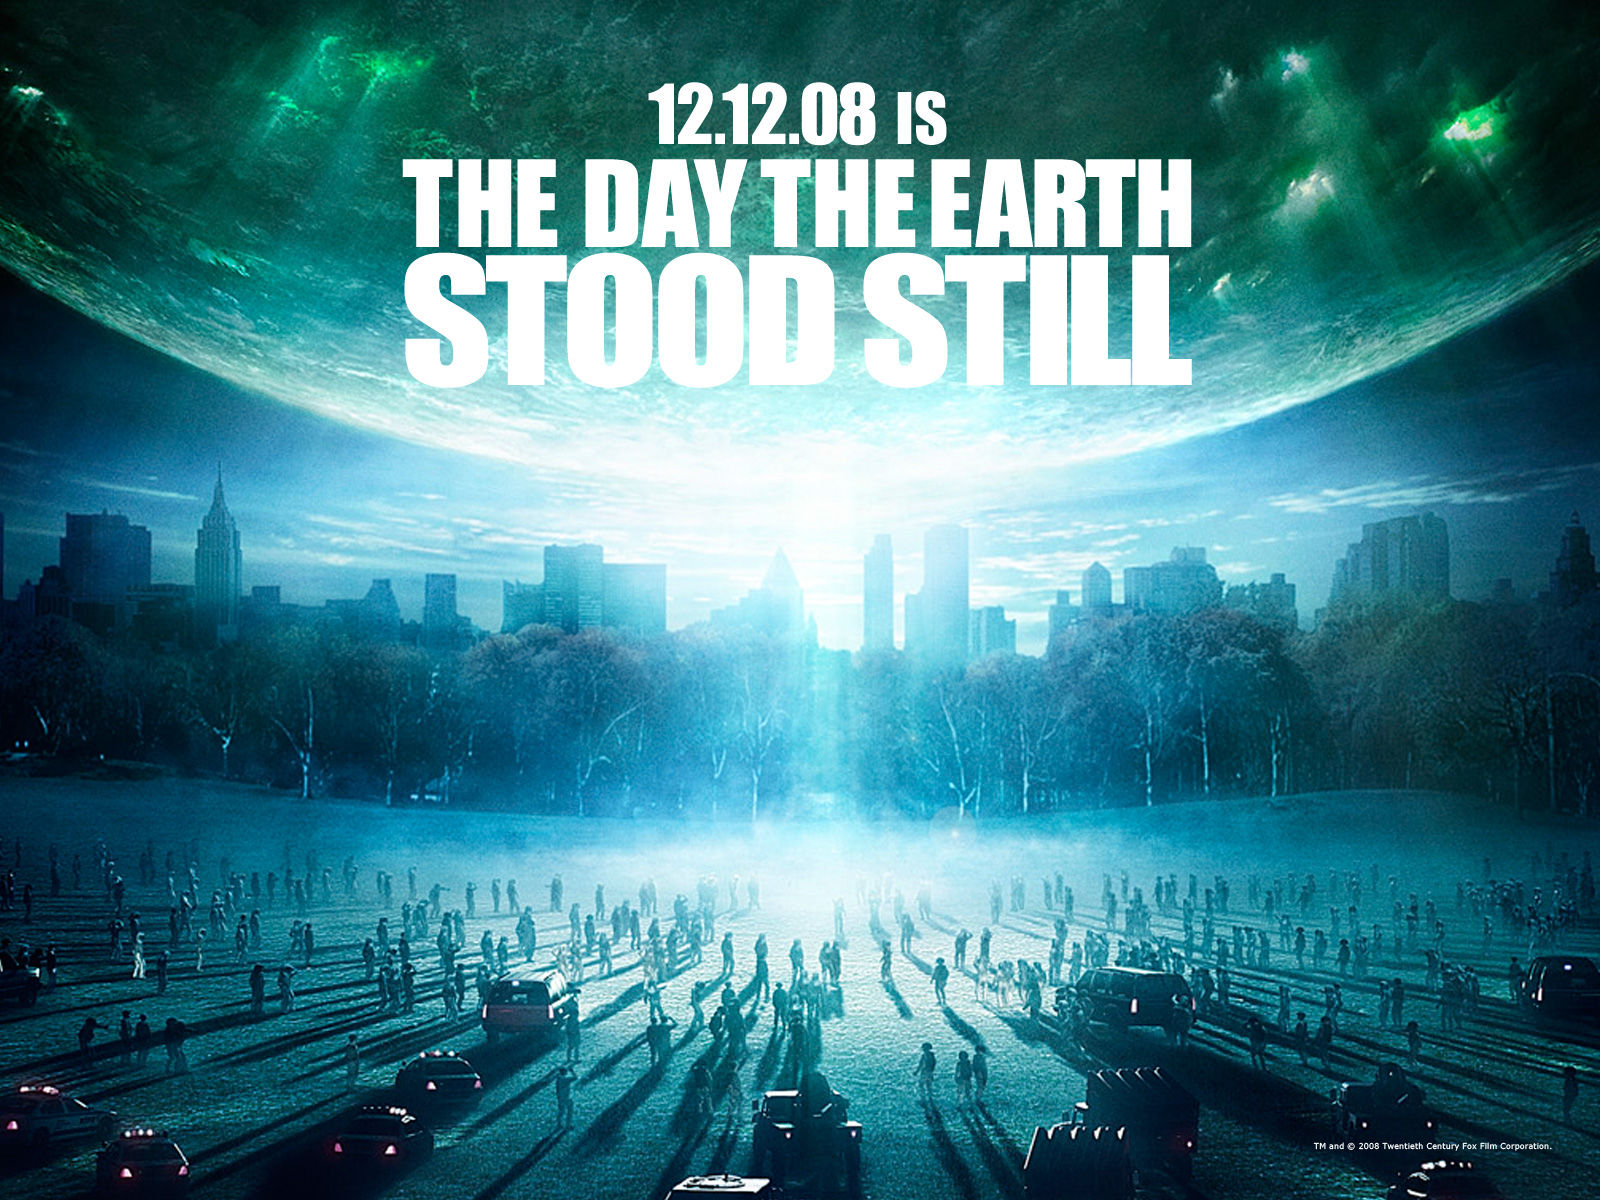 http://4.bp.blogspot.com/-rBaxAMZW0xs/Tf9PuO1be1I/AAAAAAAABGA/fudEahA5OsI/s1600/the_day_the_earth_stood_still01.jpg